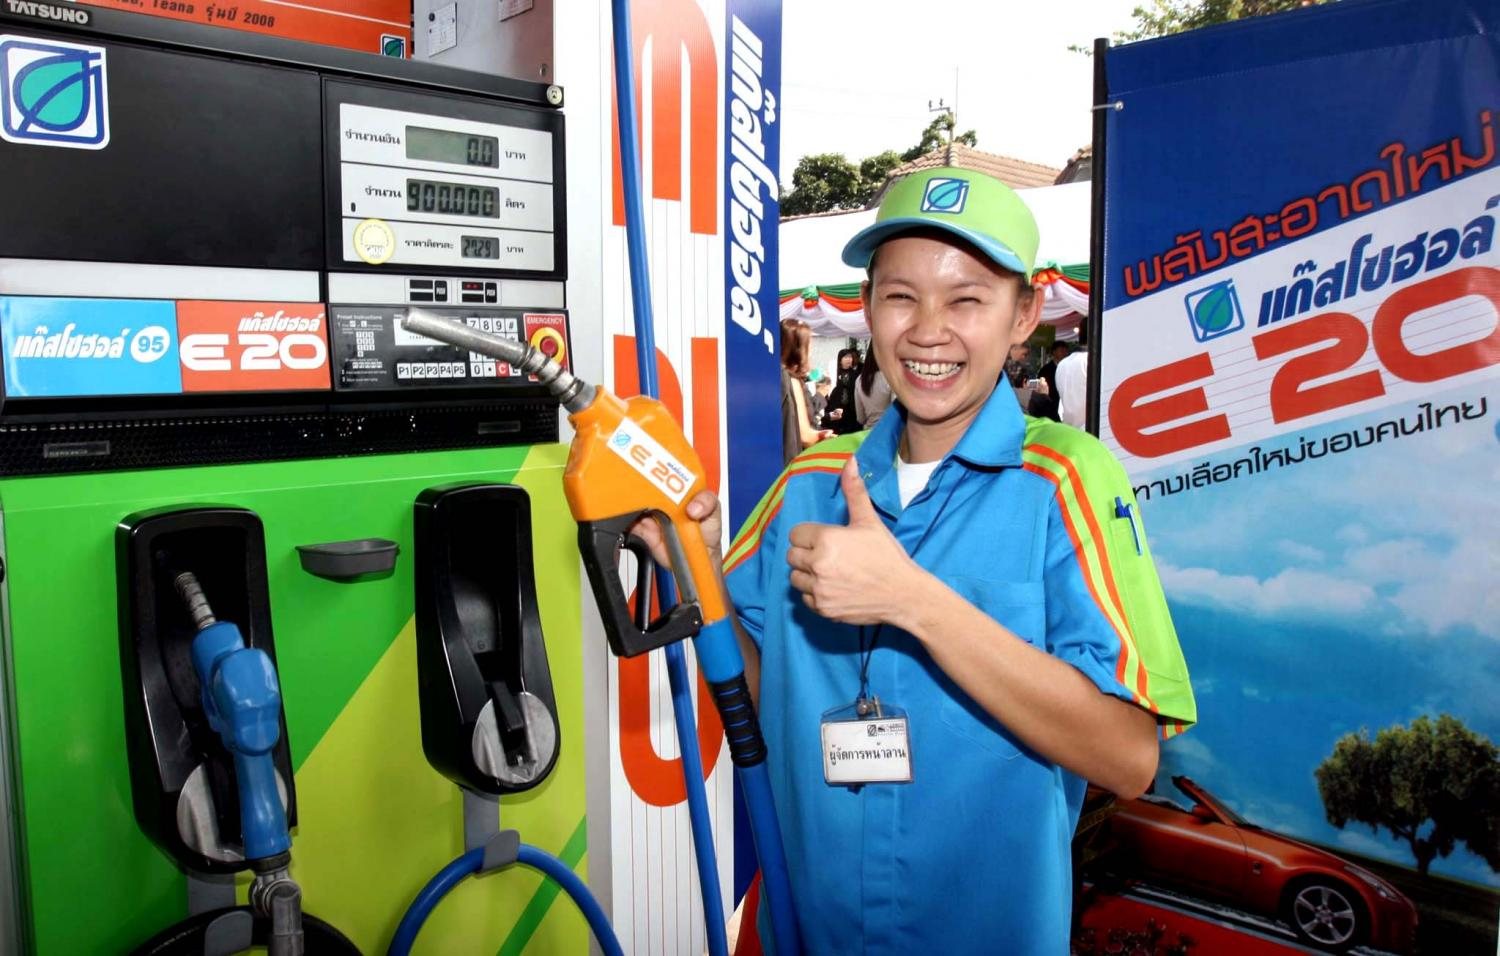 A petrol station worker promotes Gasohol E-20 which is to become the primary gasoline for the country in early March. (Photo by Pongthai Wattanavanitvut)